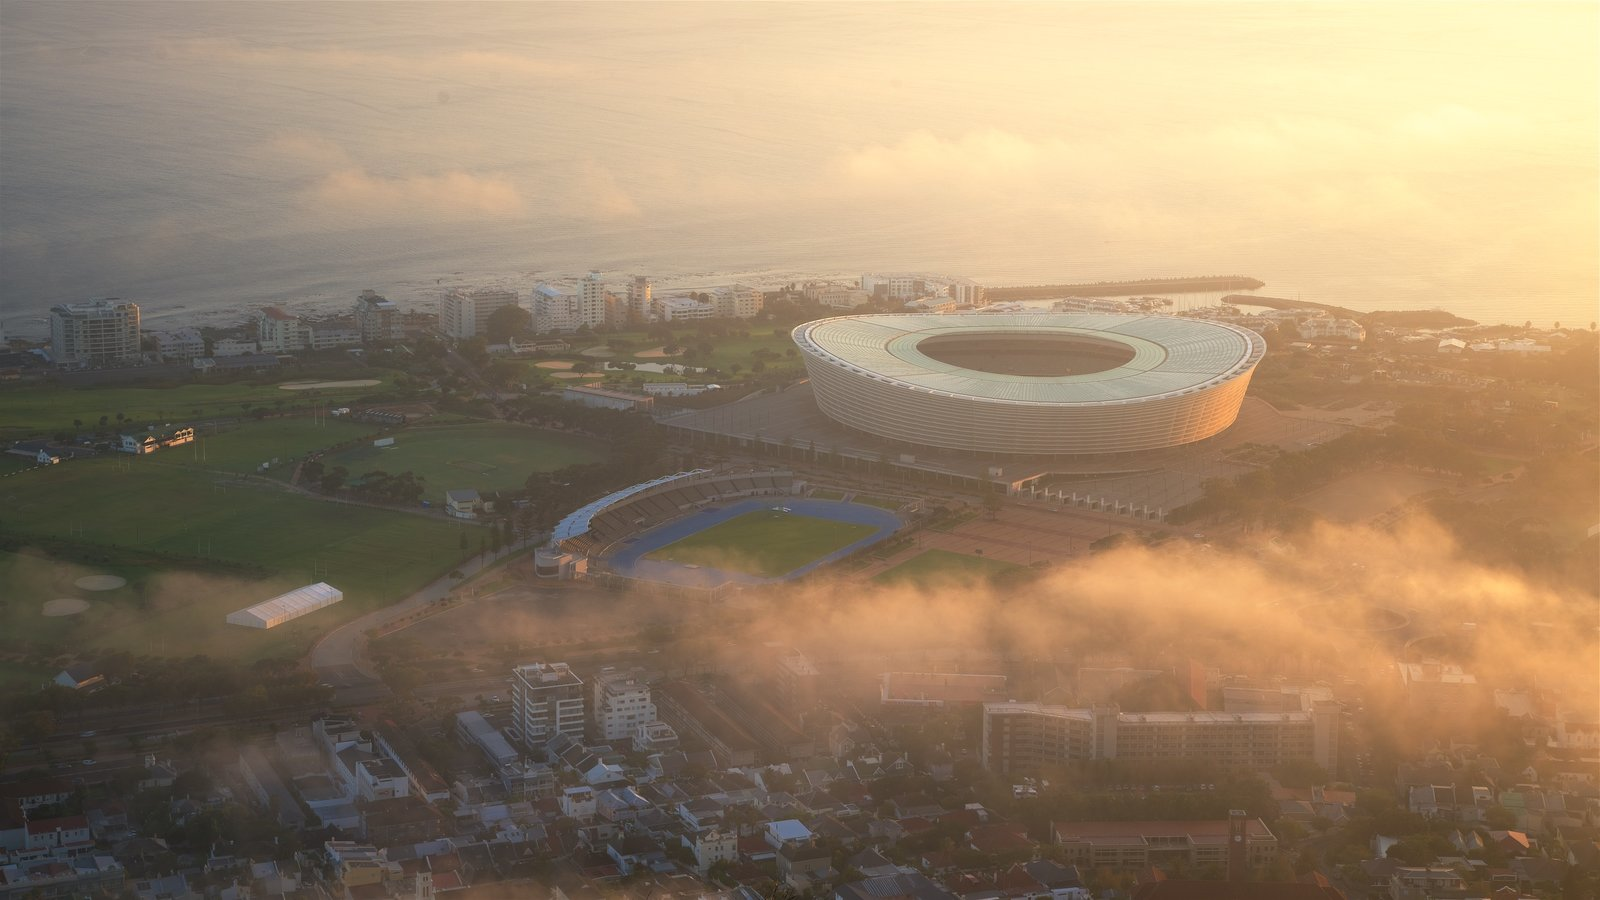 Cape Town Stadium which includes a sunset and a city